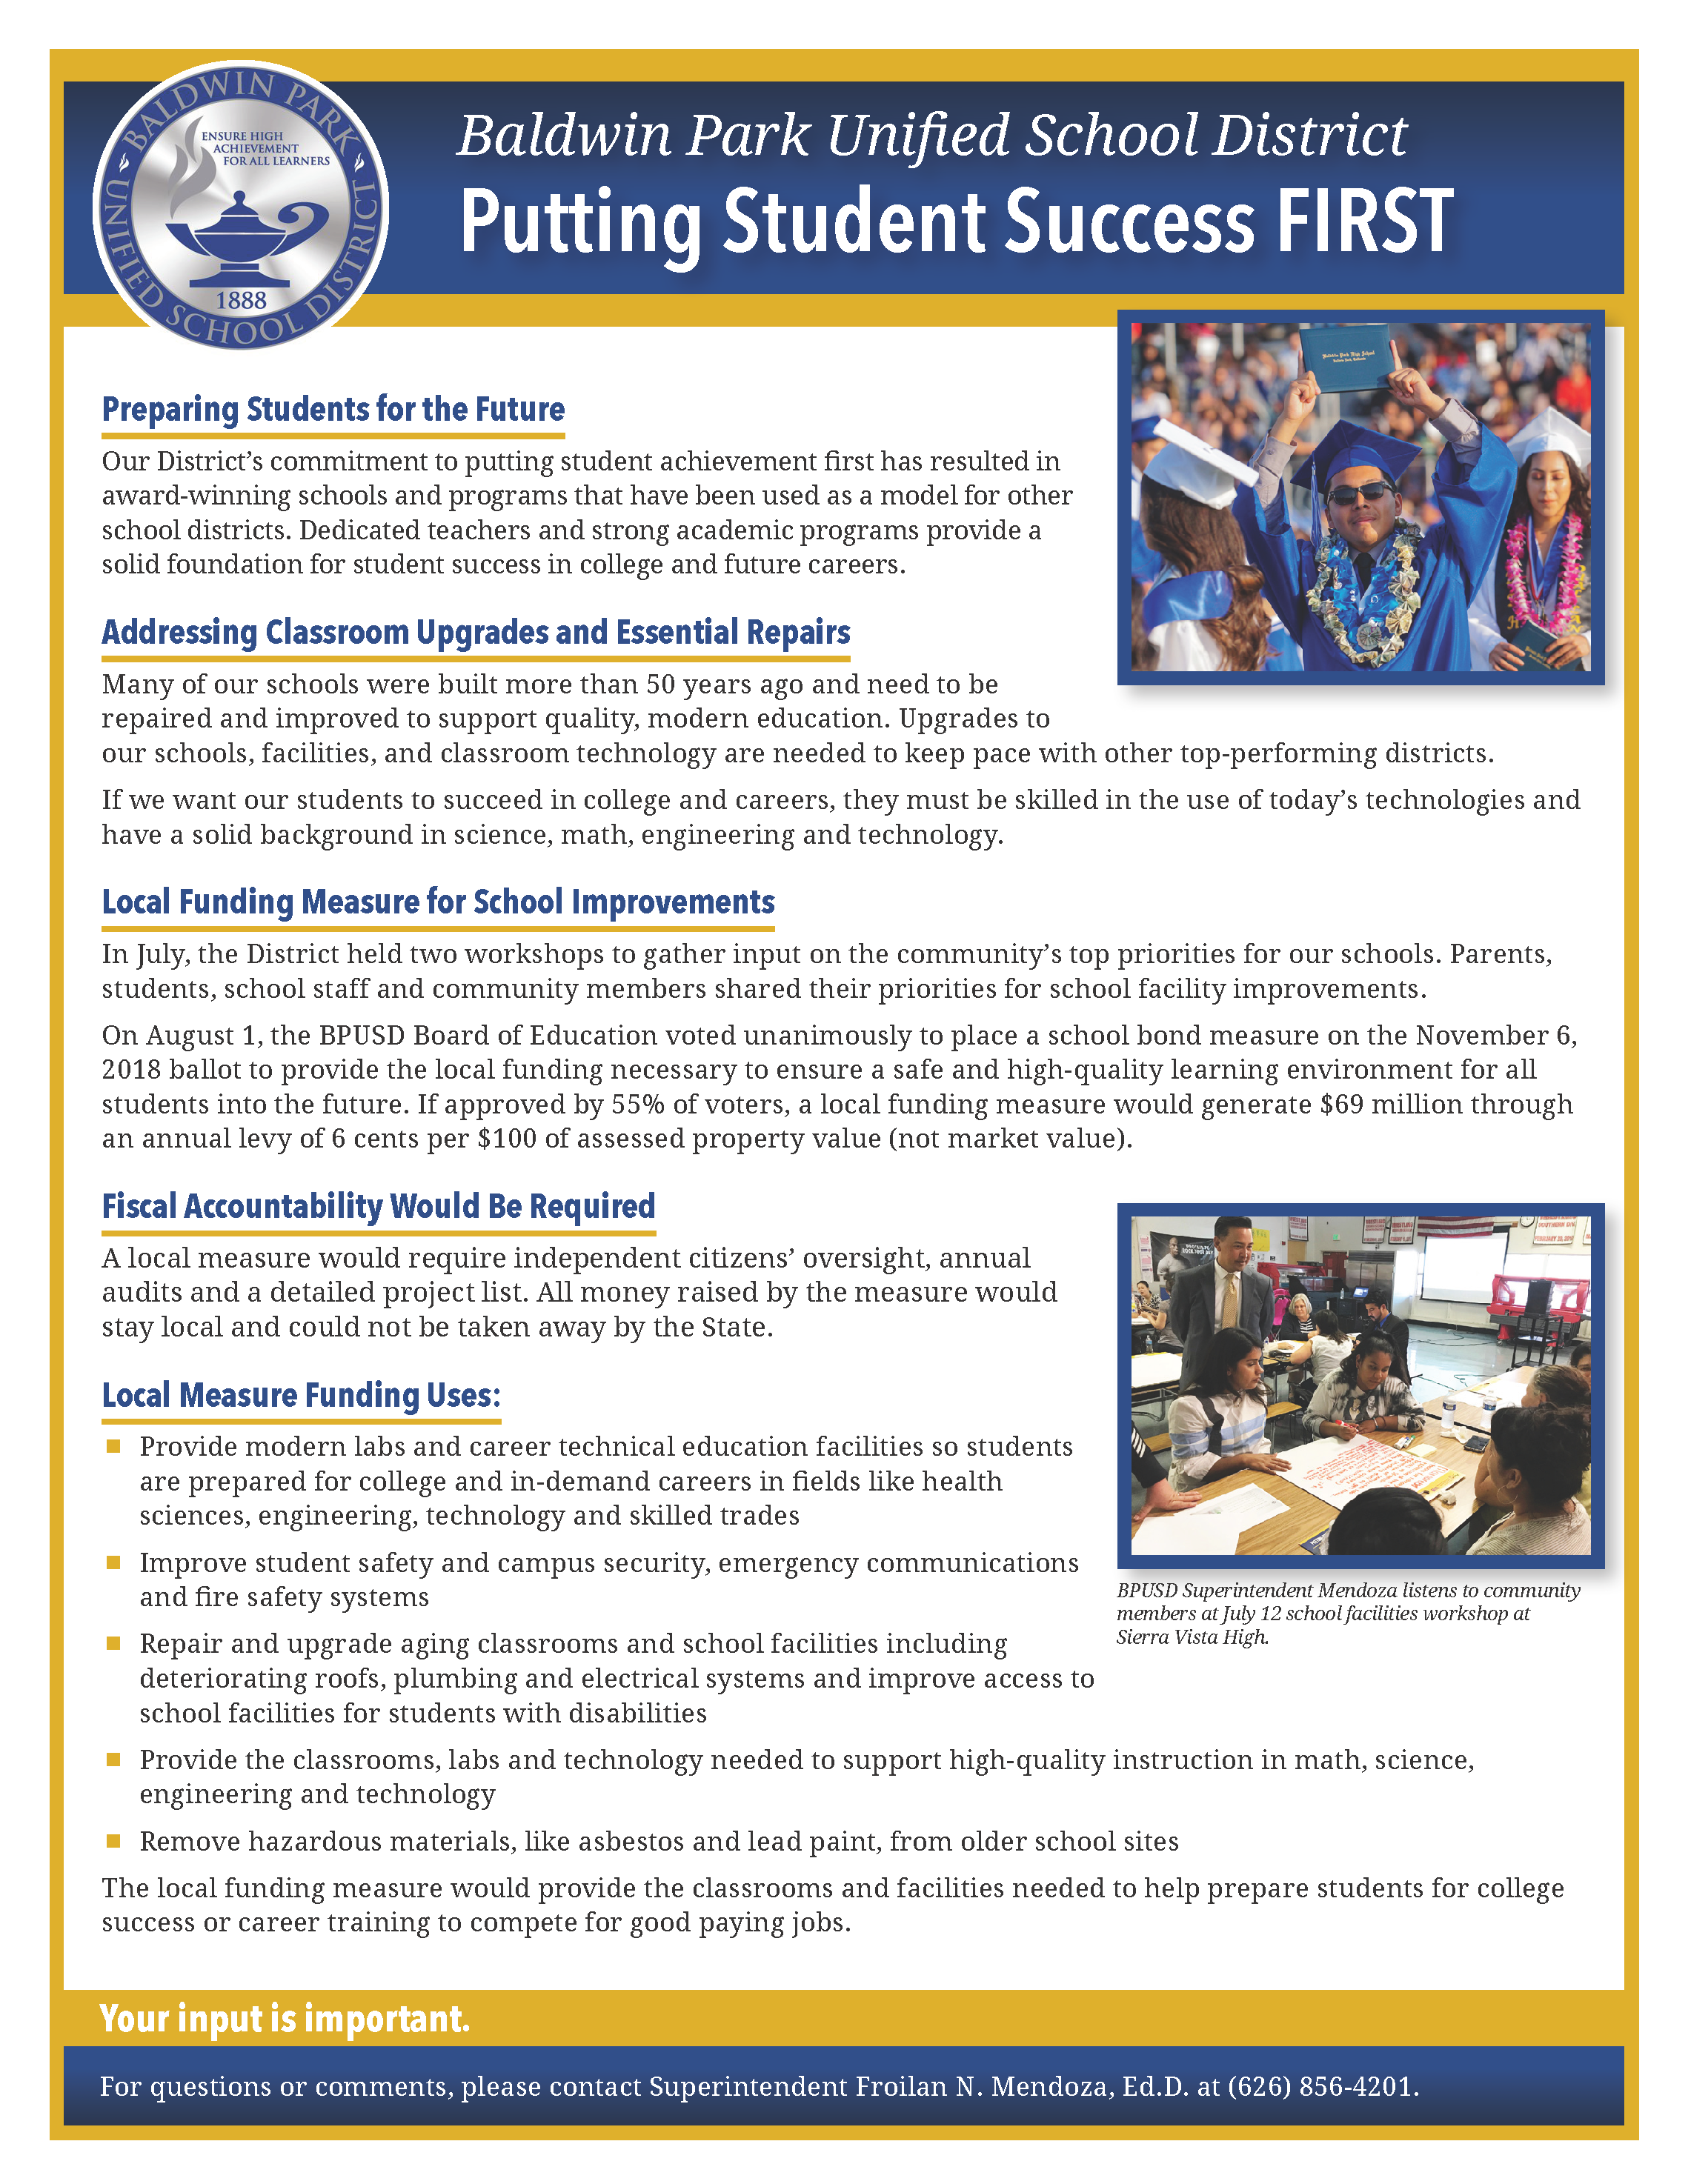 BPUSD School Bond Measure Fact Sheet